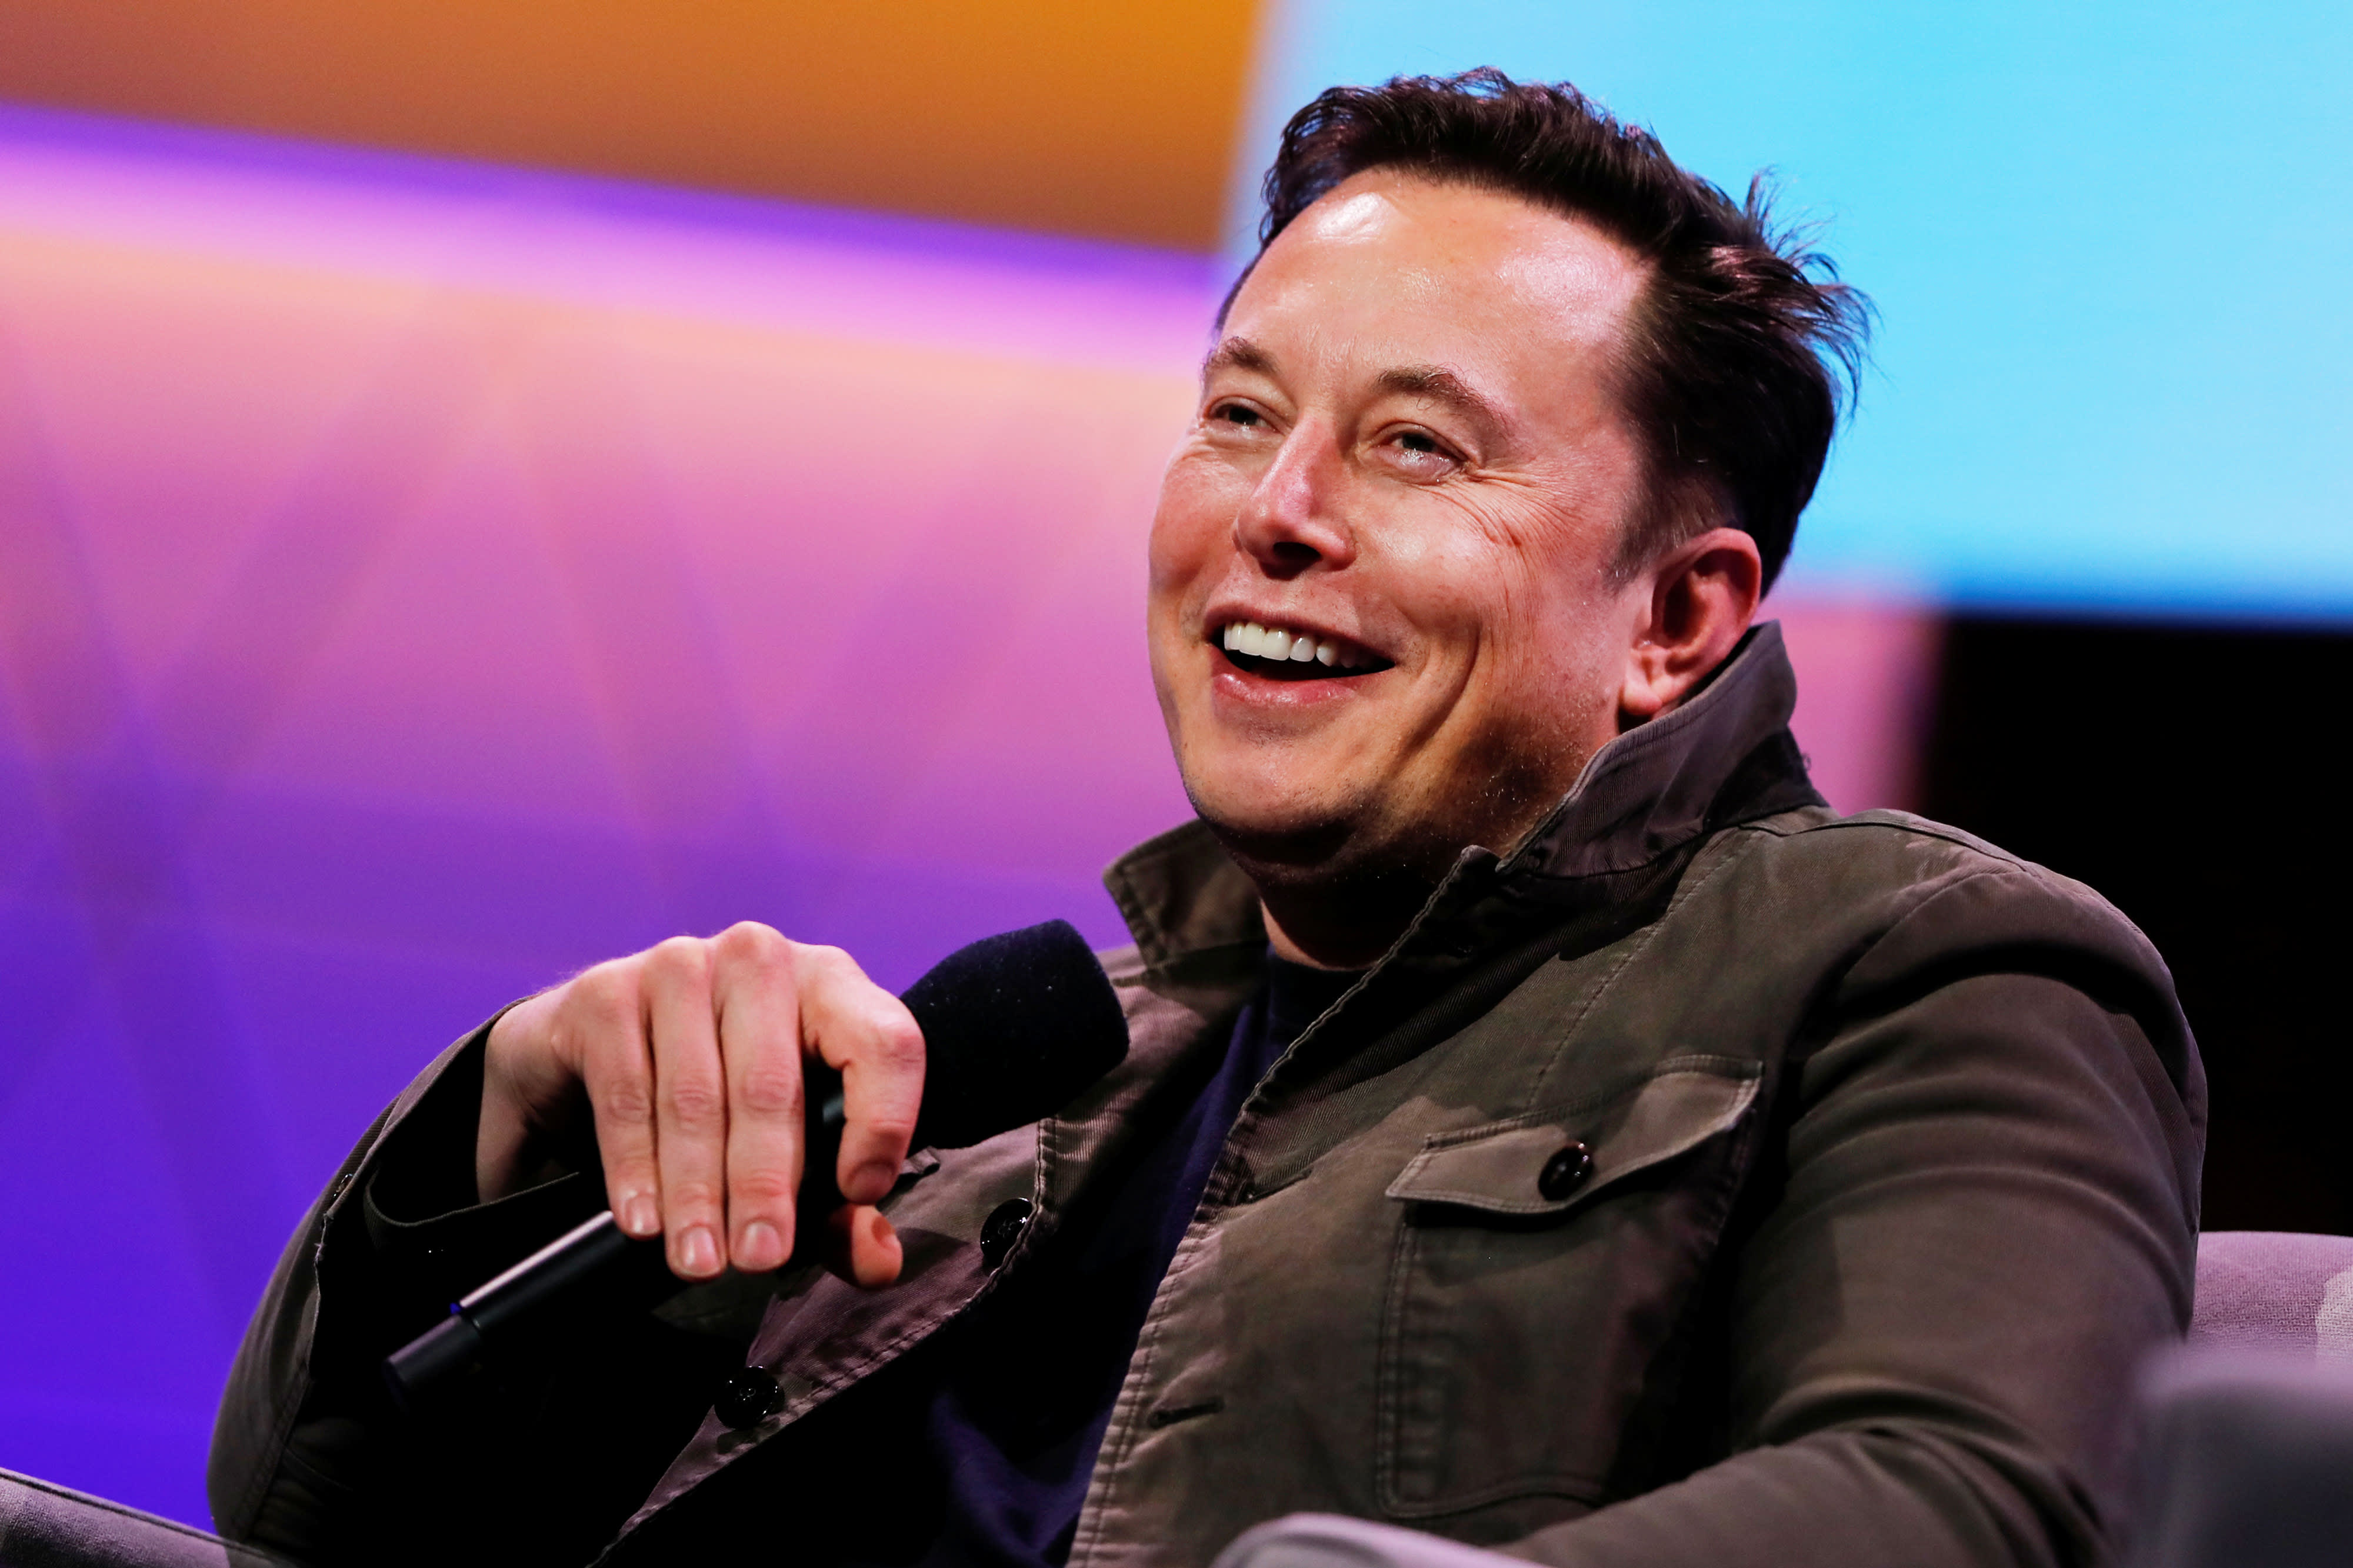 The who, what and where of Elon Musk's $100 million prize money for carbon capture innovation